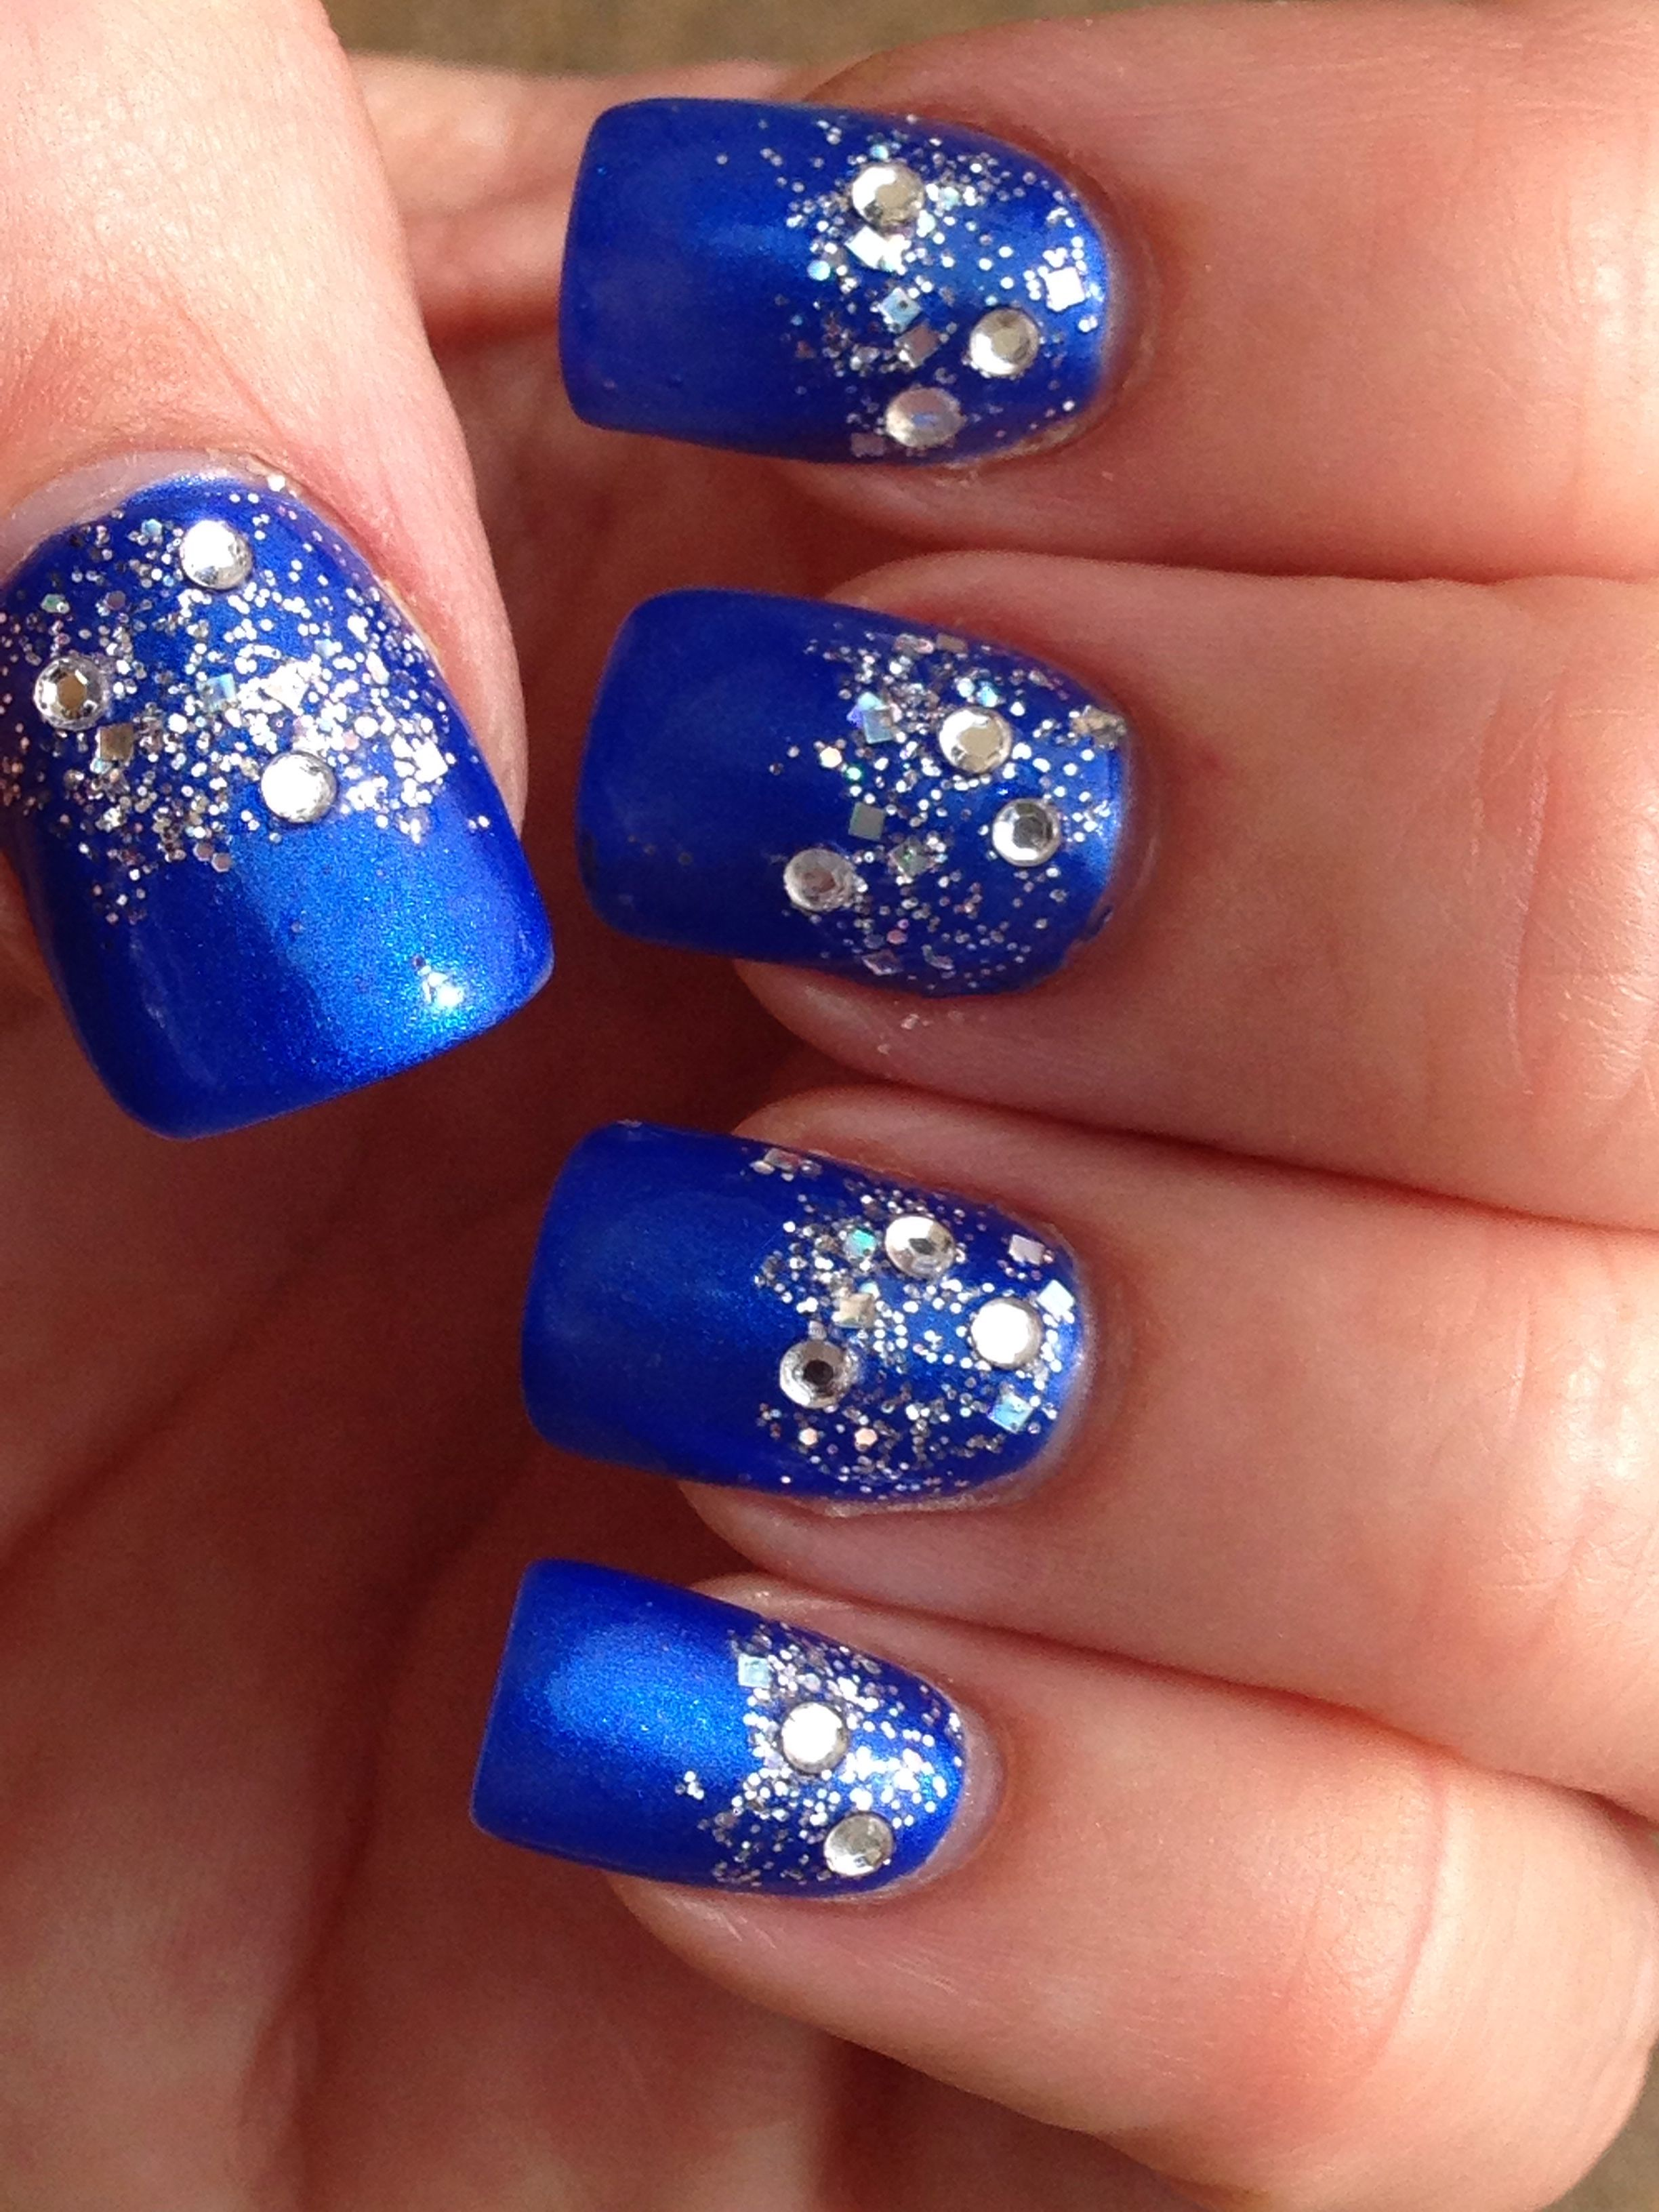 Dallas Cowboys Nail Art - Bling on Bling with Silver Ombré Glitter ...